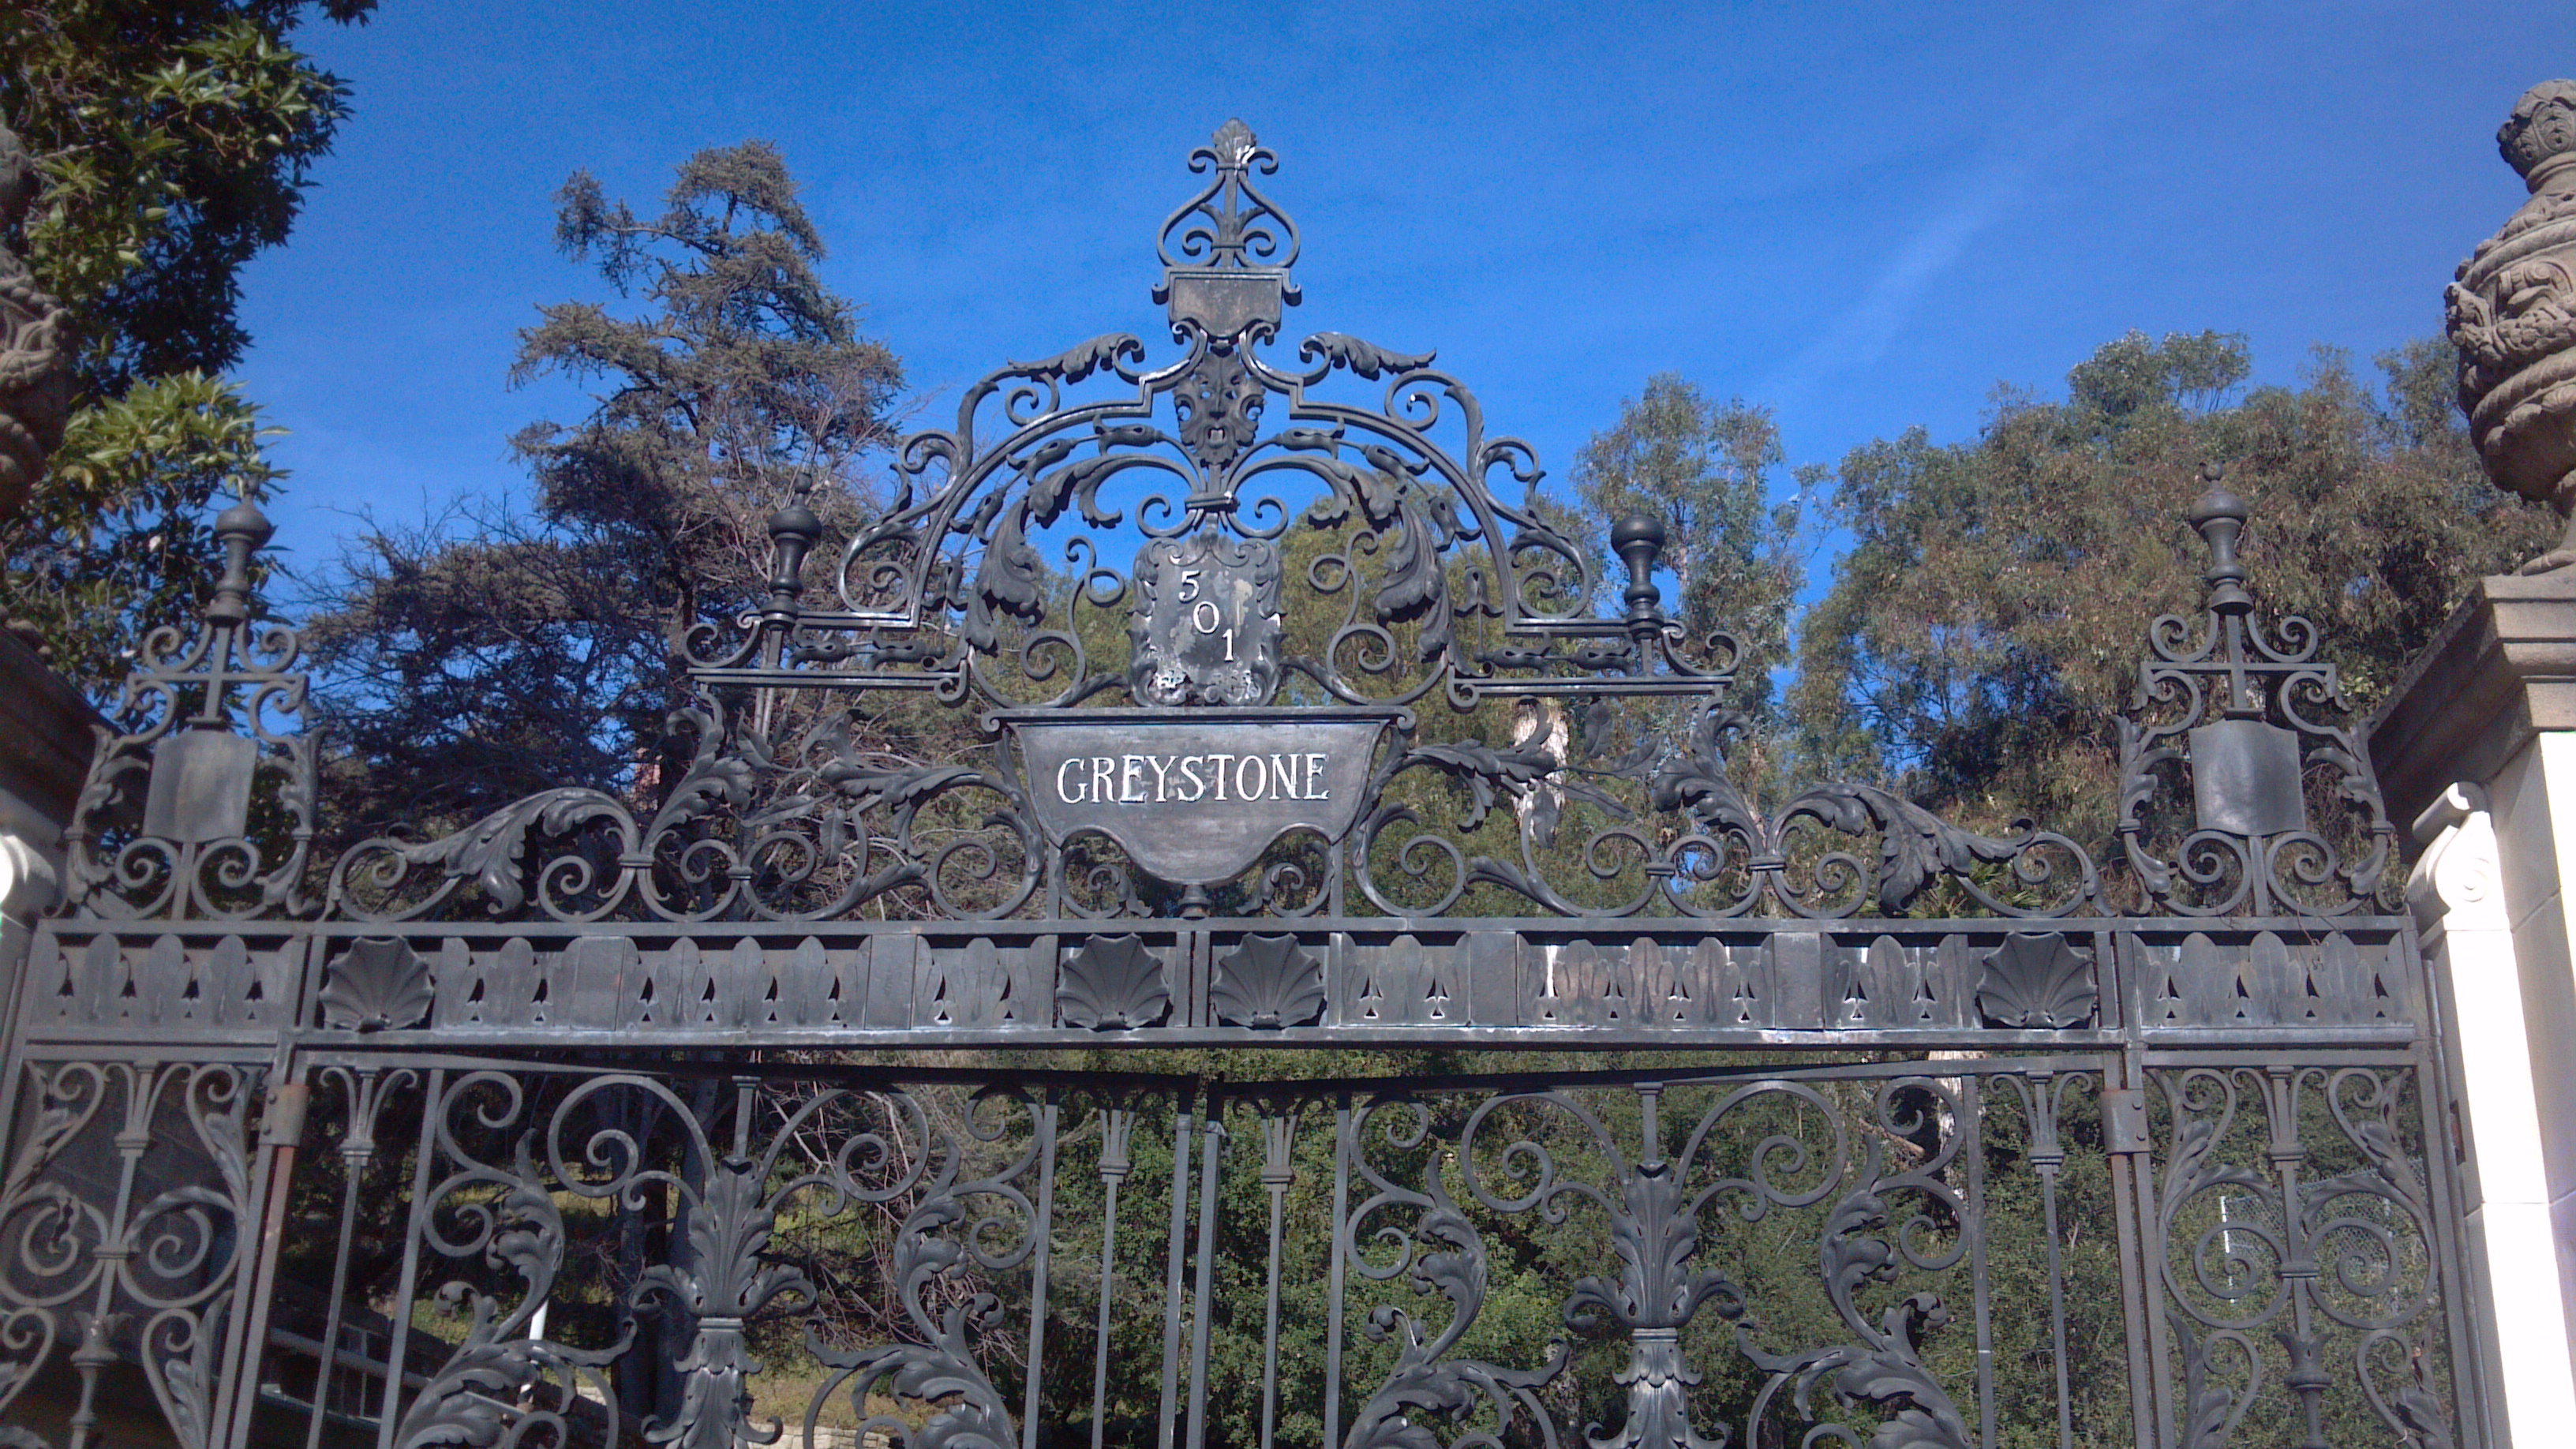 Tour of Beverly Hills Celebrity Homes and Greystone Mansion